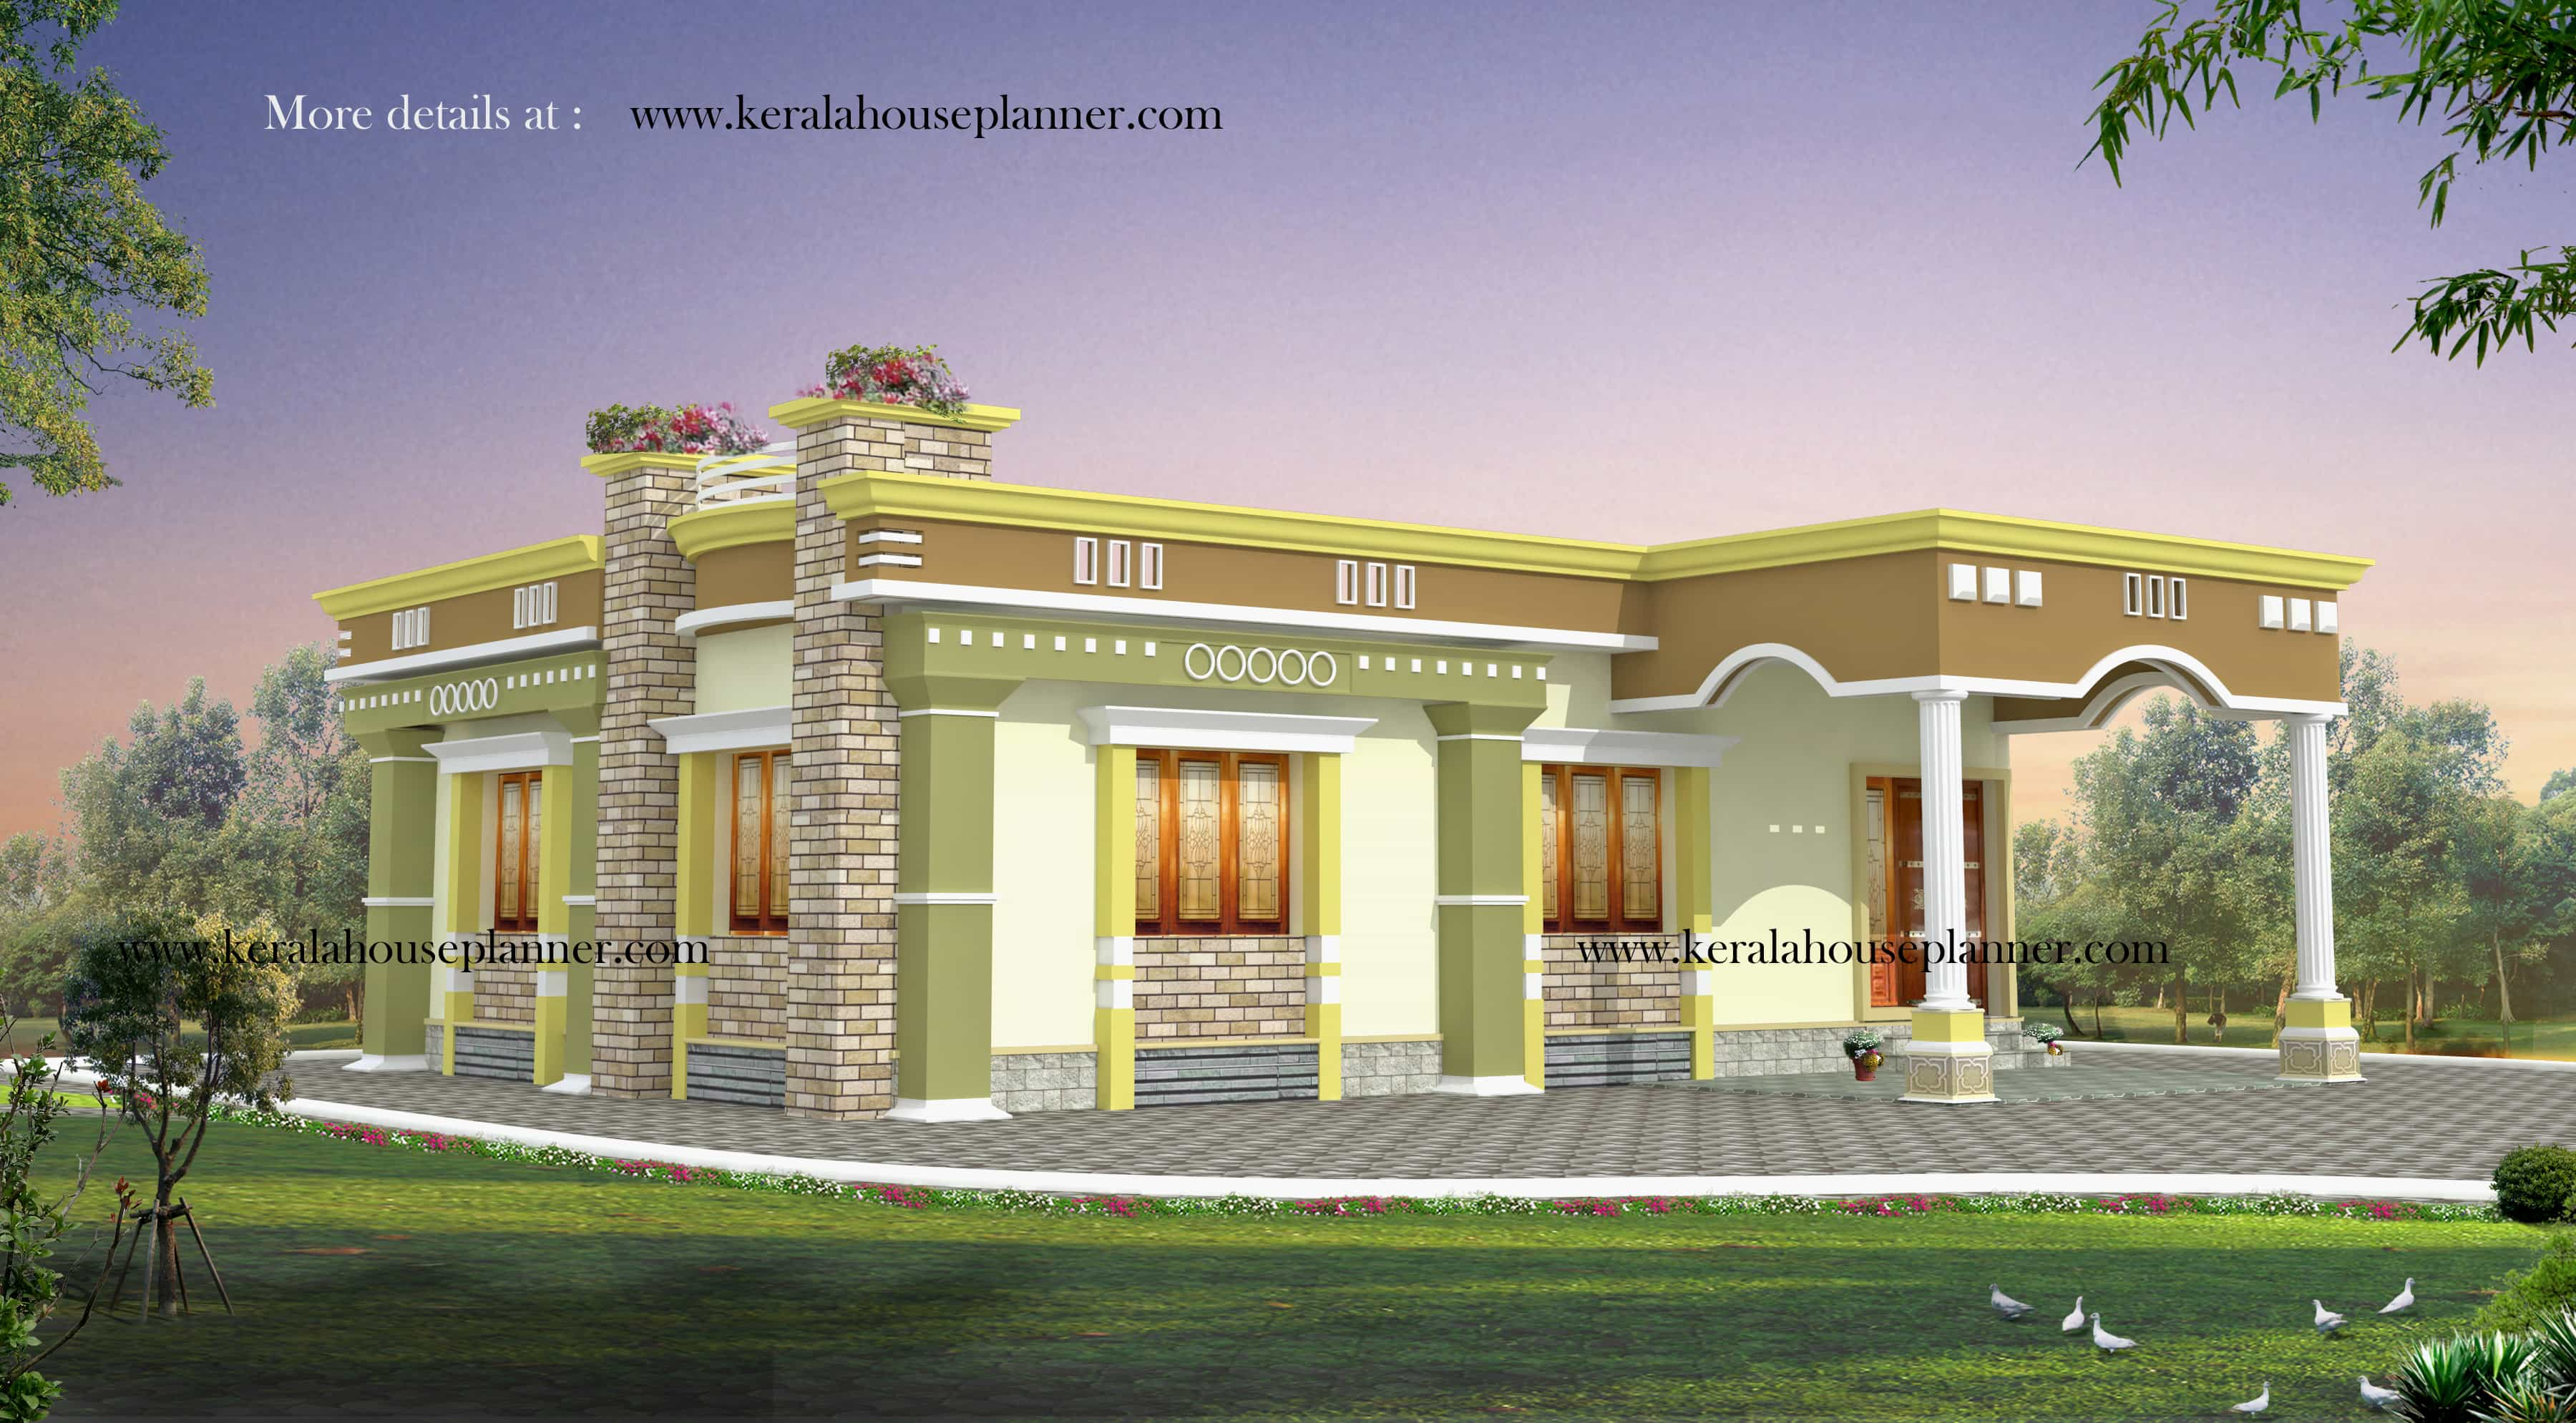 kerala house plans 1200 sq ft with photos